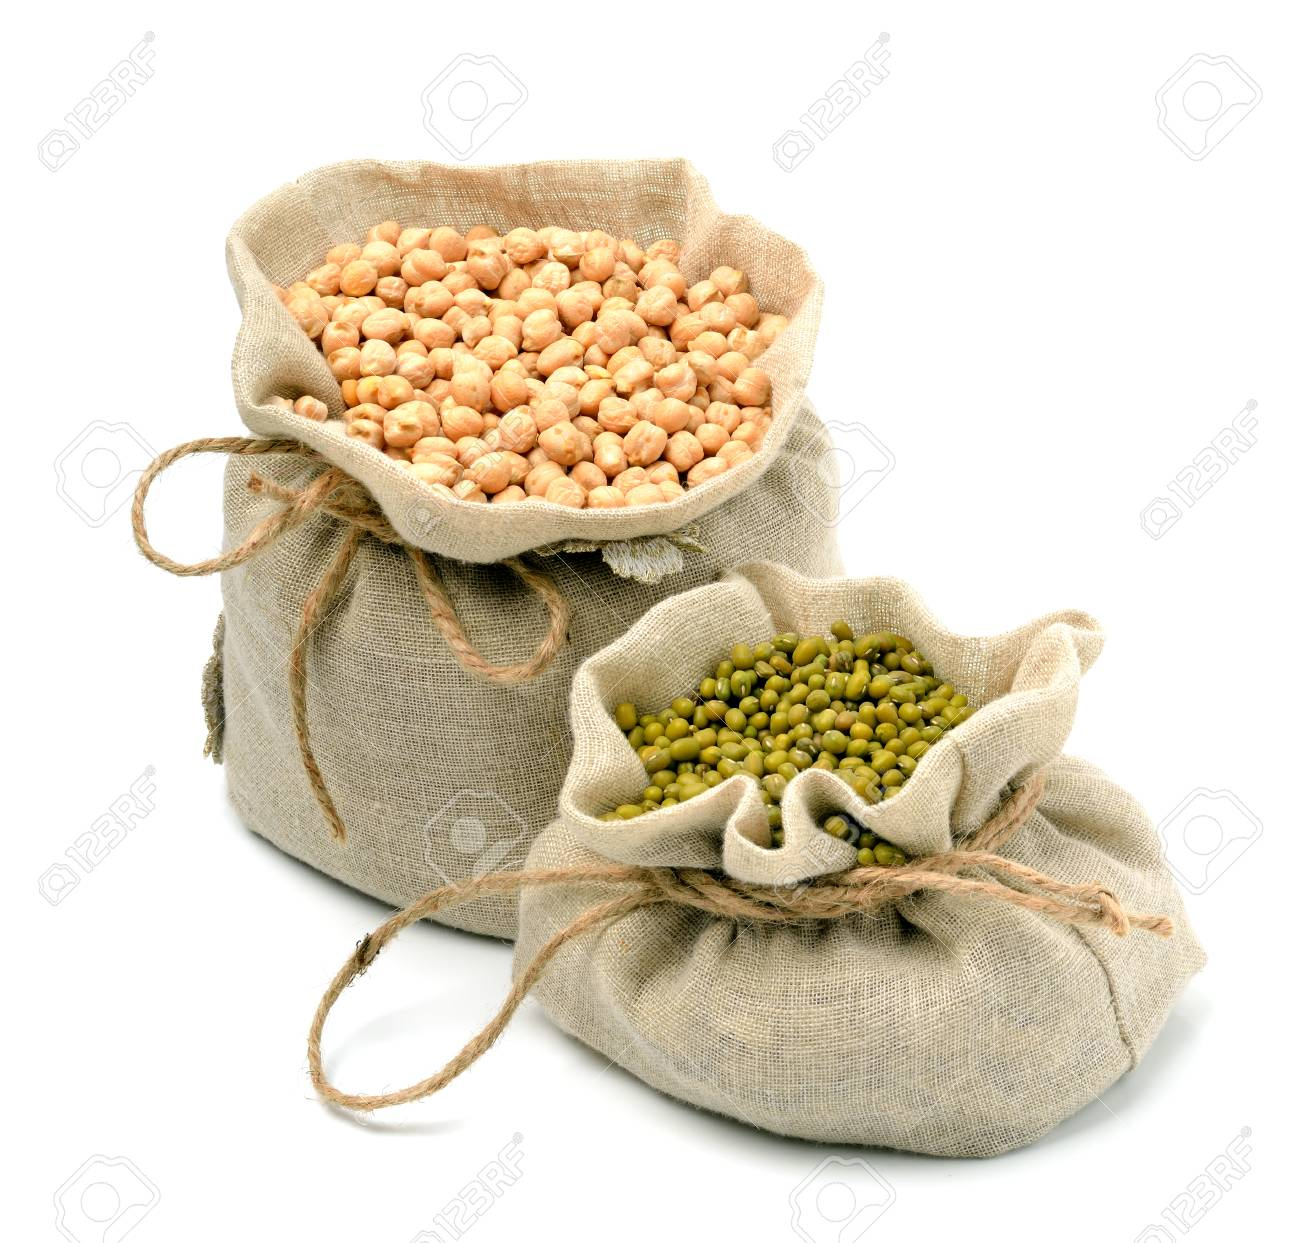 chick-pea, mung beans in sacks isolated on white background - 72044724